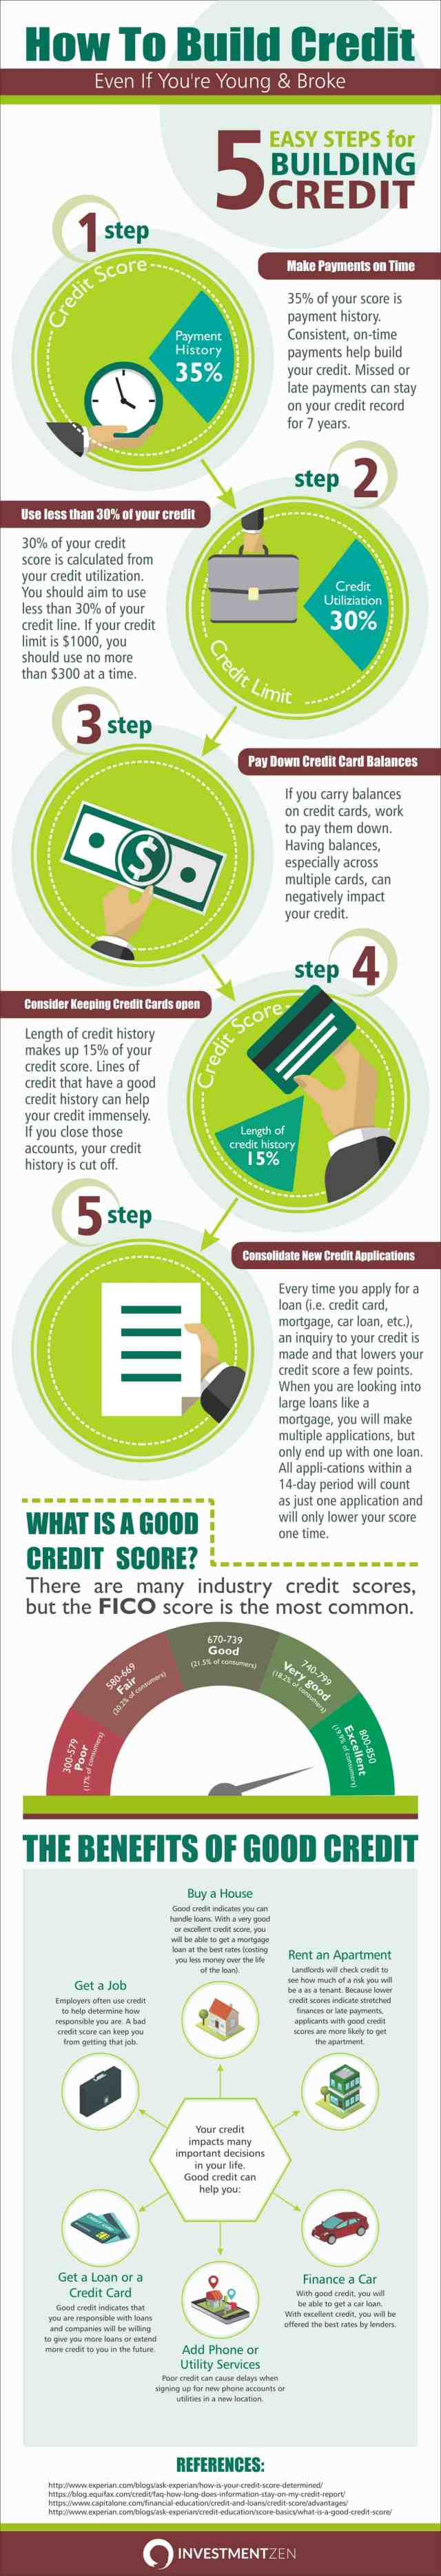 How To Build Credit (Even If You're Young & Broke)